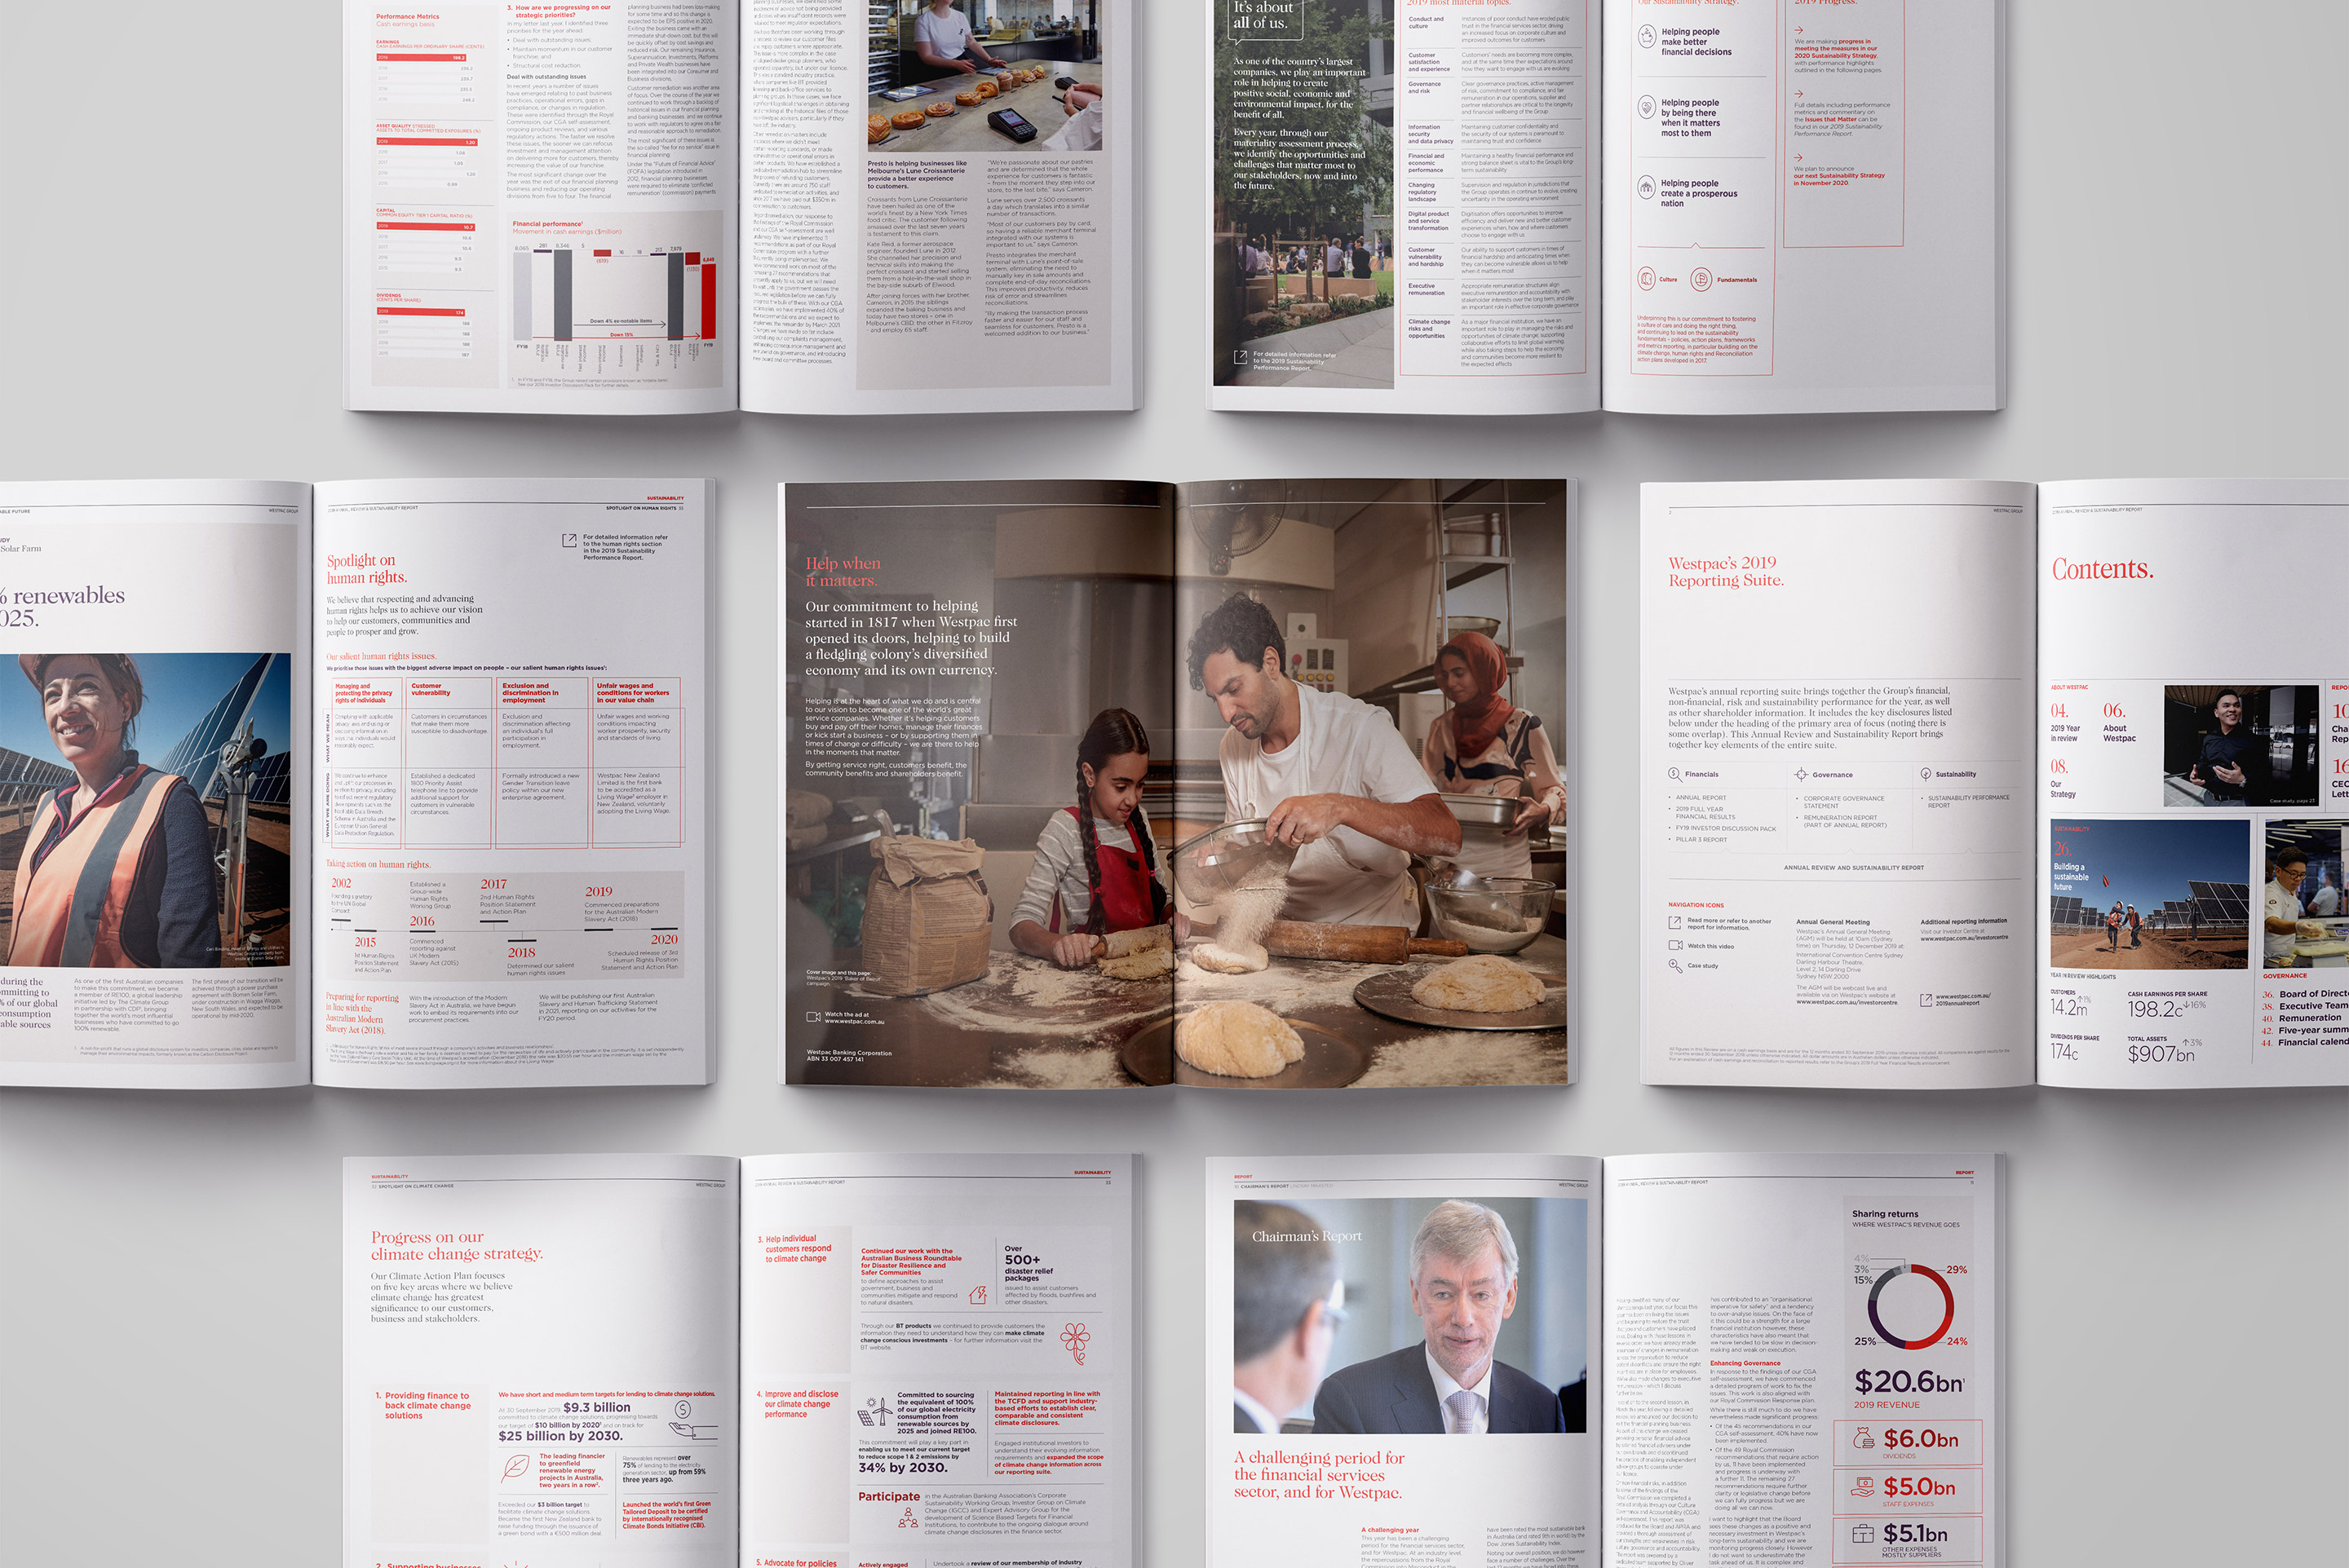 Westpac 2019 Annual Report. Inside spread page design overview.